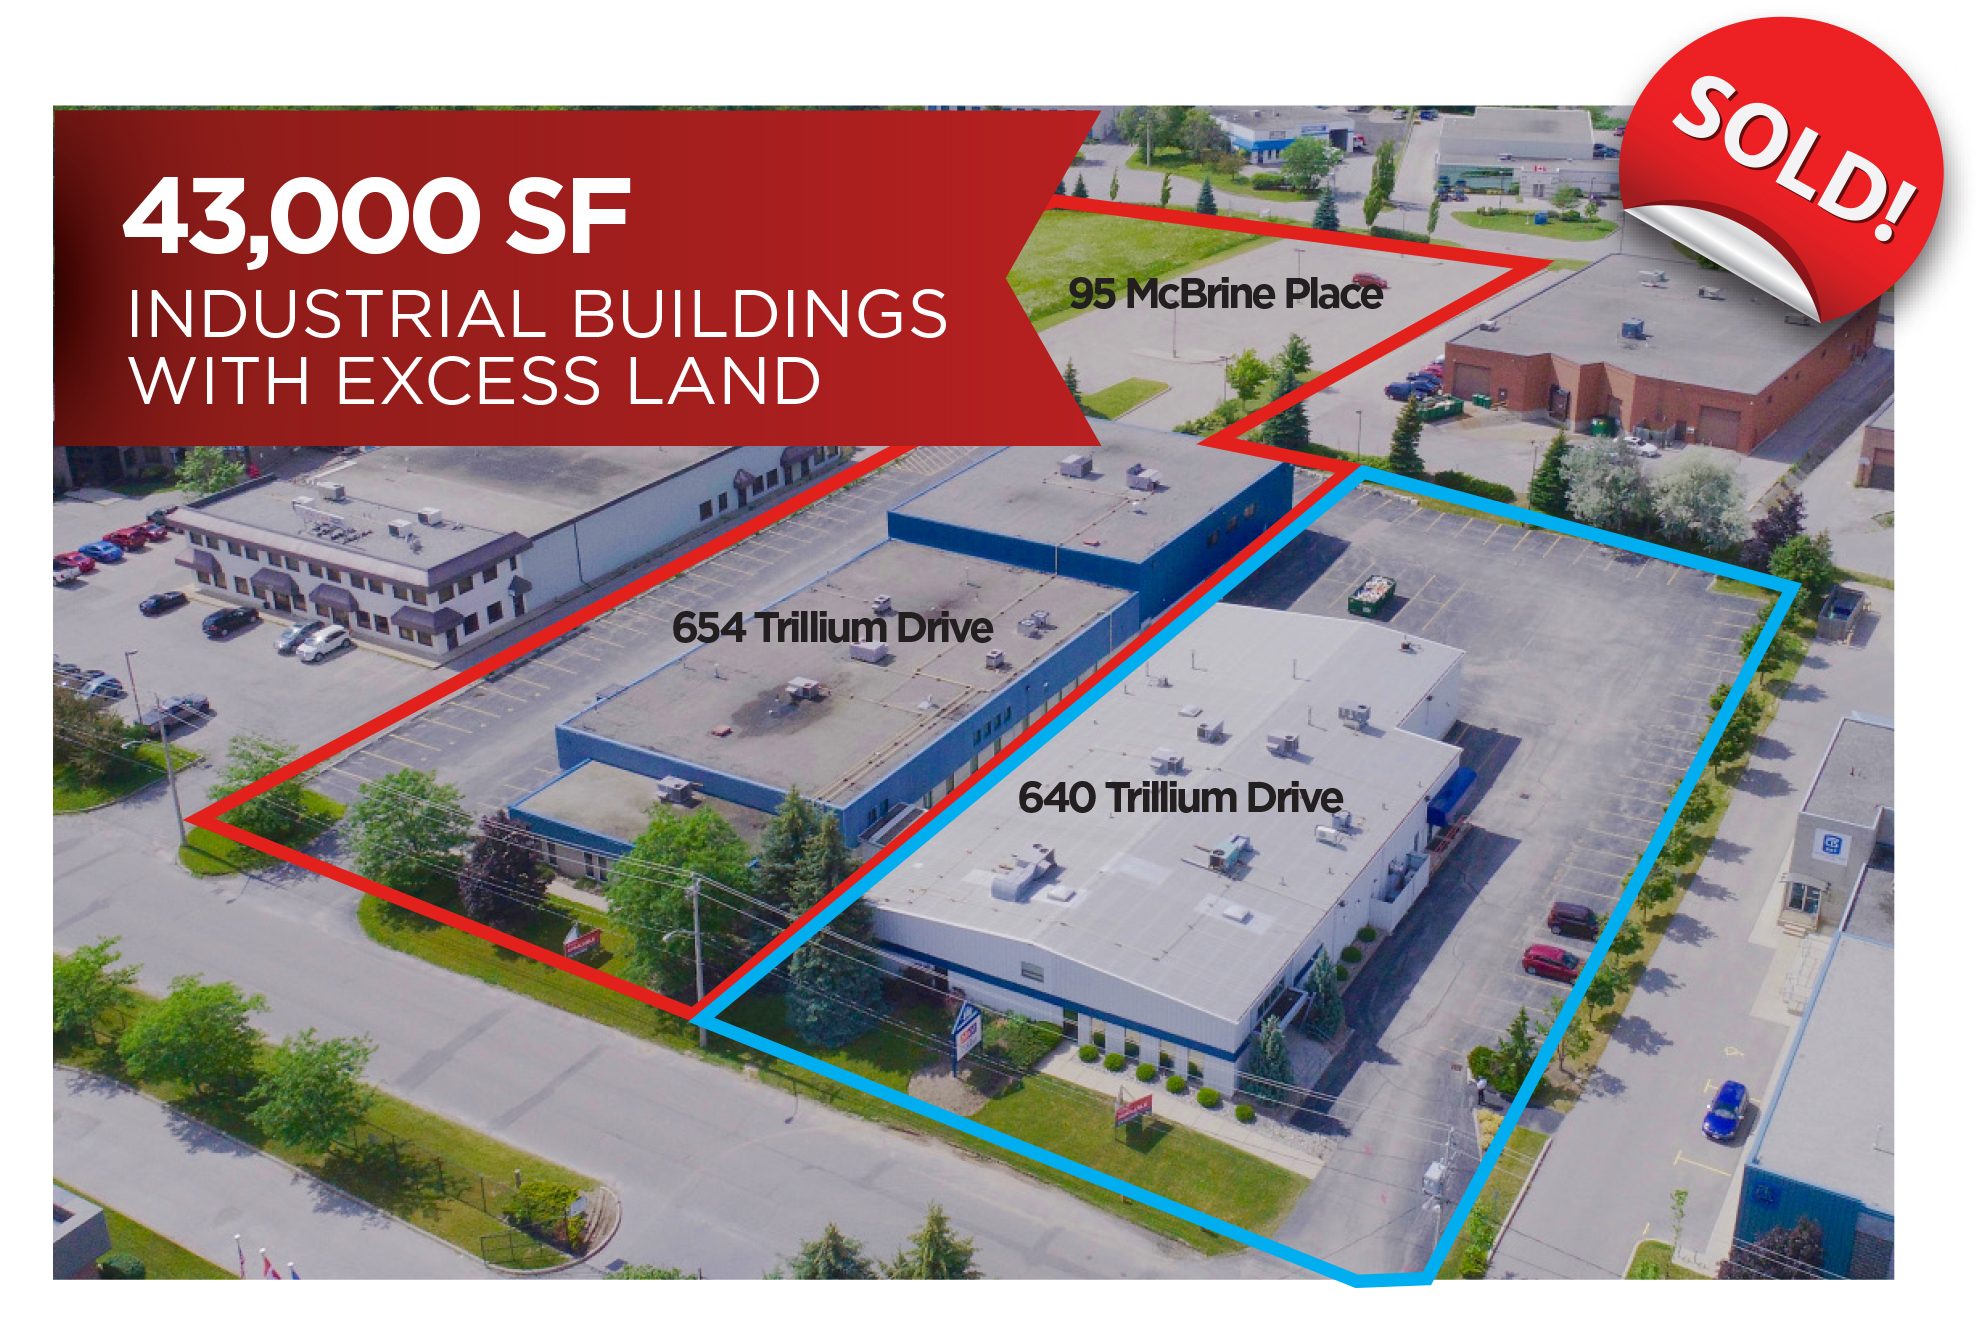 Industrial Buildings & 2 acres of excess Land | Kitchener, ON